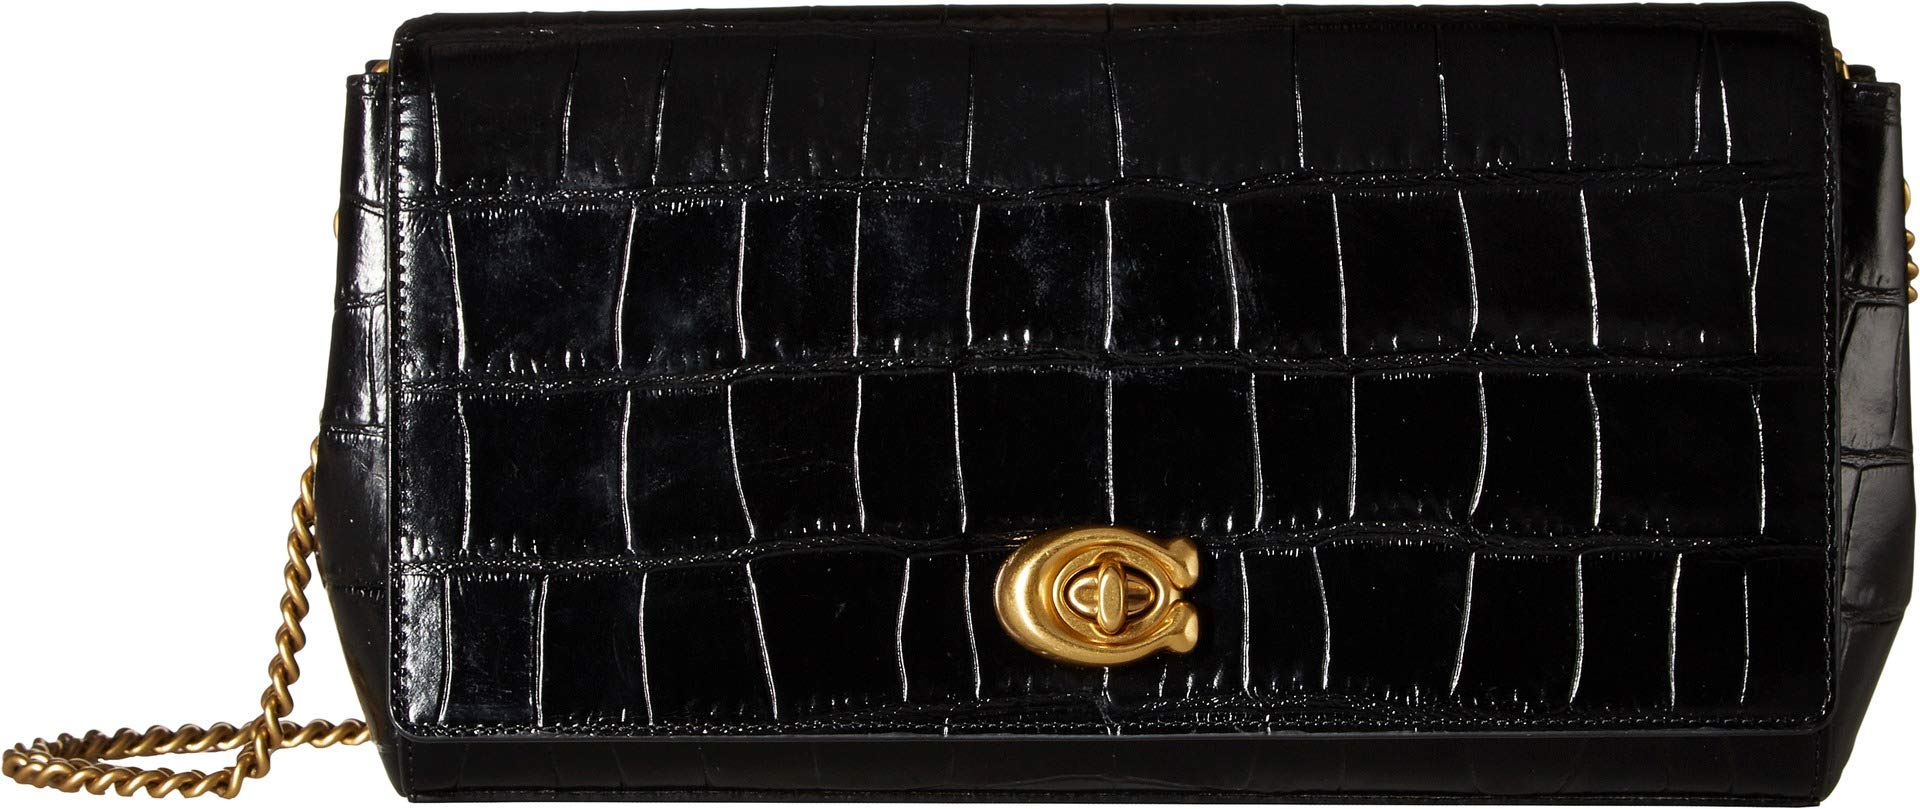 COACH Women's Embossed Croc Turnlock Clutch with Chain B4/Black One Size